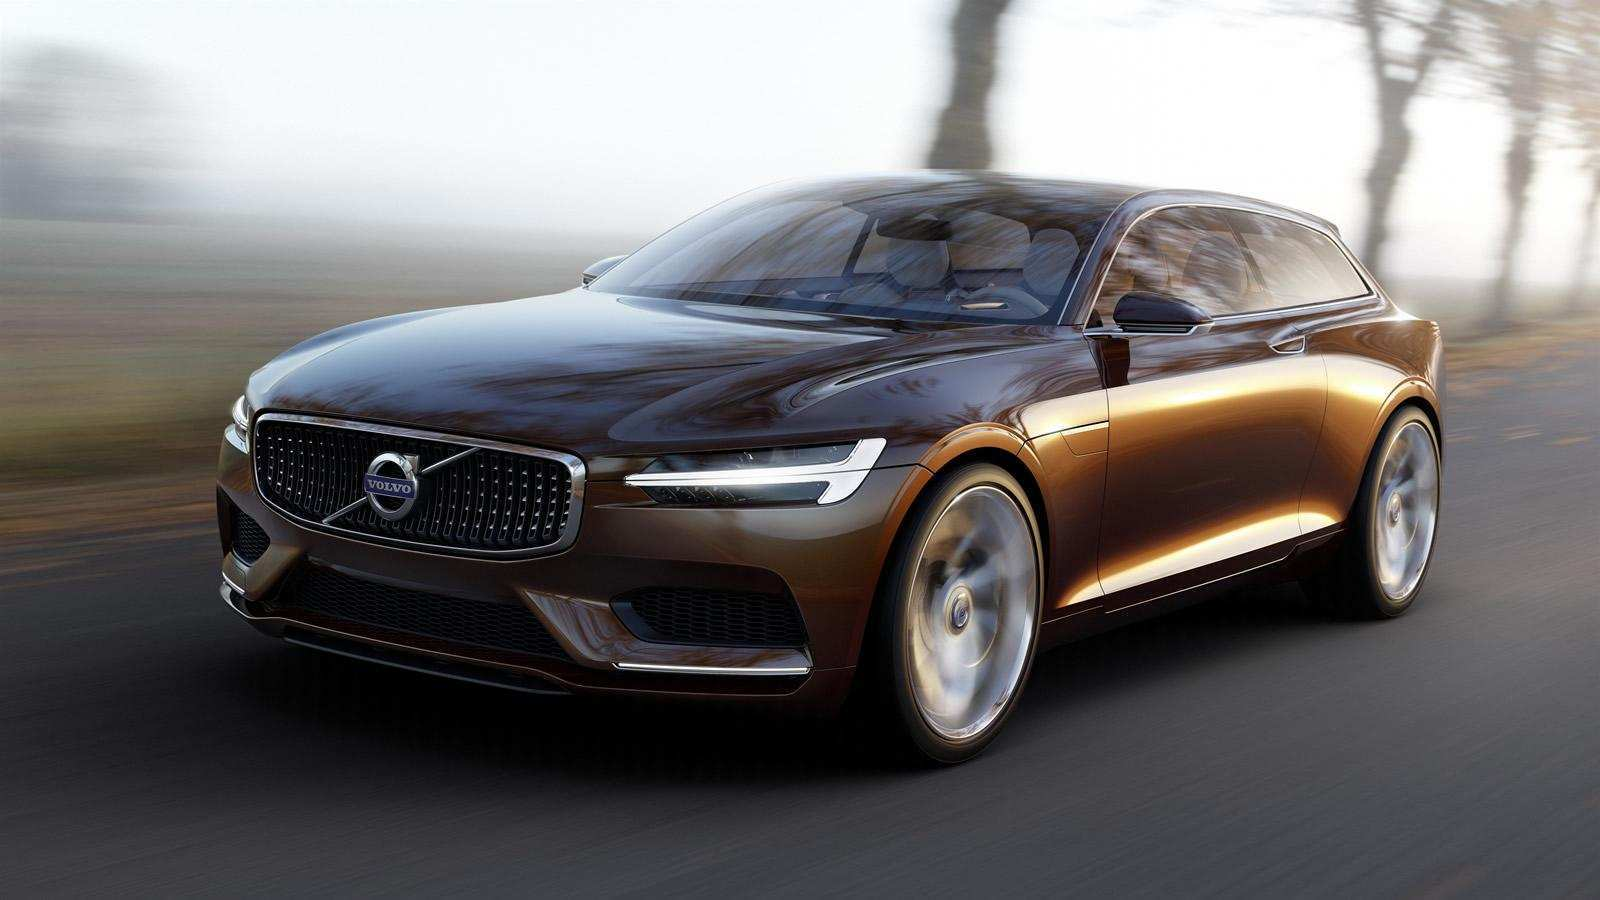 88 Great Volvo Promises An Injury Proof Car By 2020 Interior for Volvo Promises An Injury Proof Car By 2020